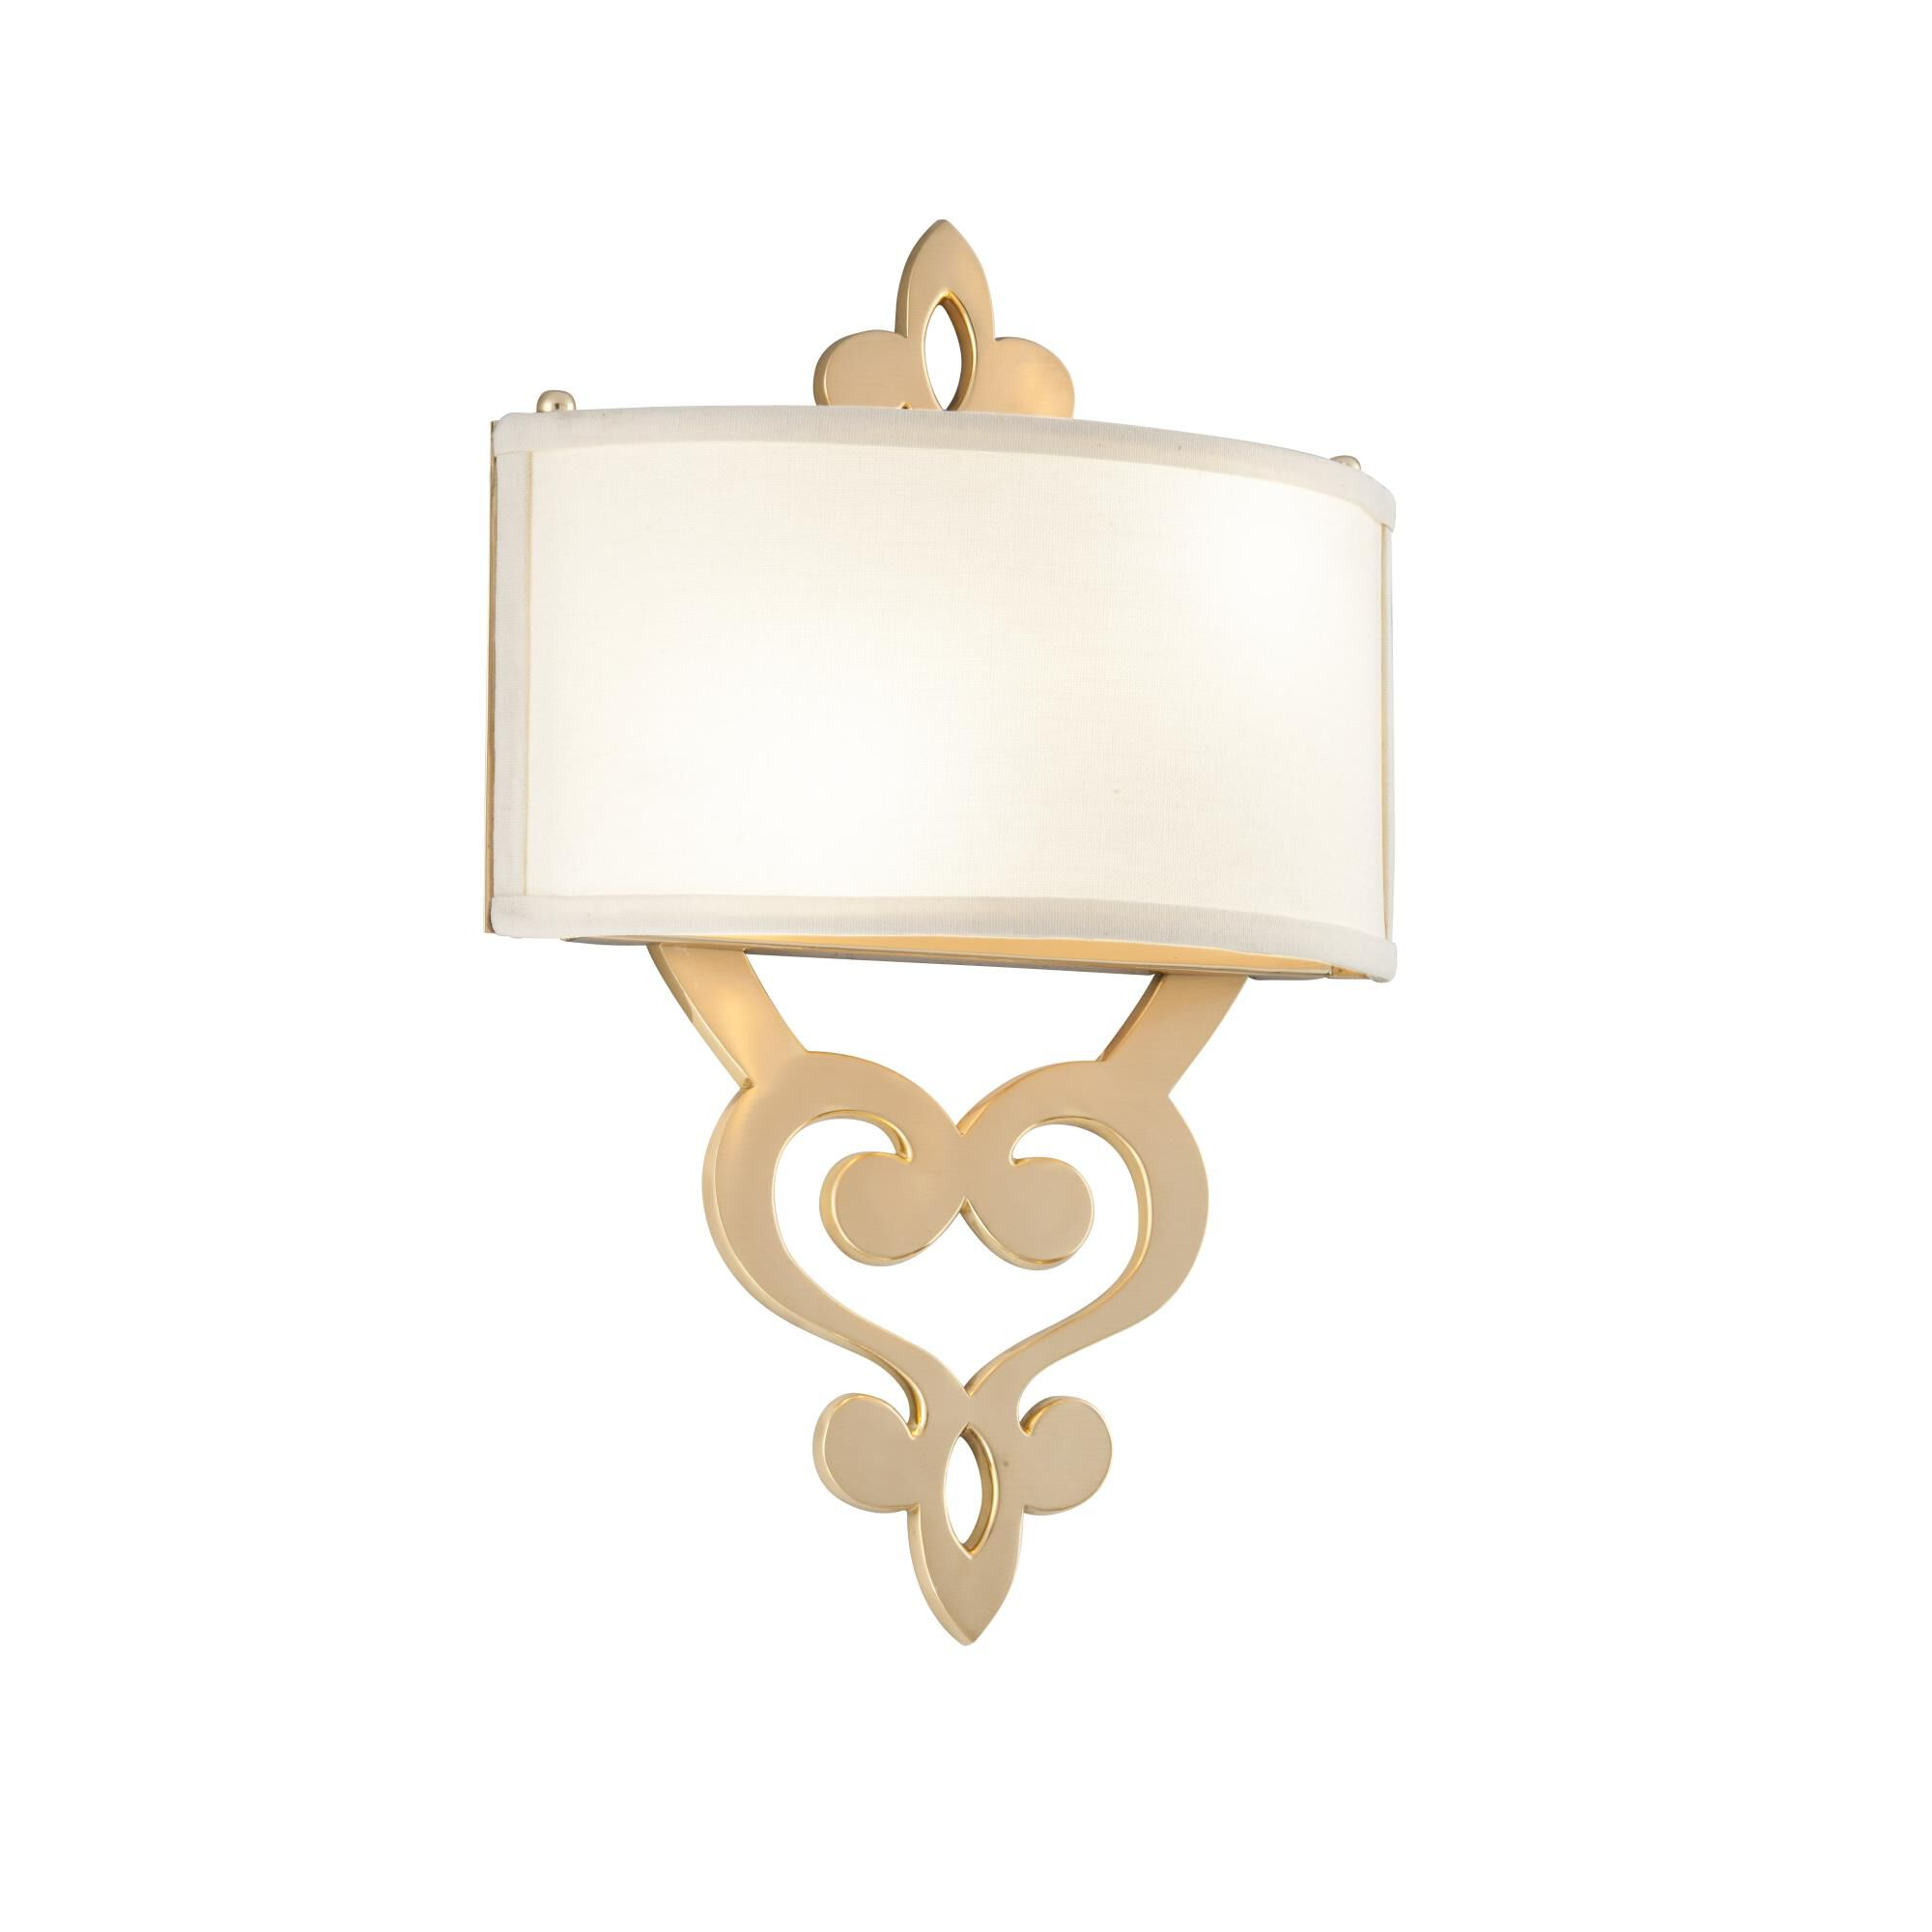 Corbett Lighting Olivia 13 Inch Wall Sconce Olivia - 201-12 - Transitional Wall Sconce